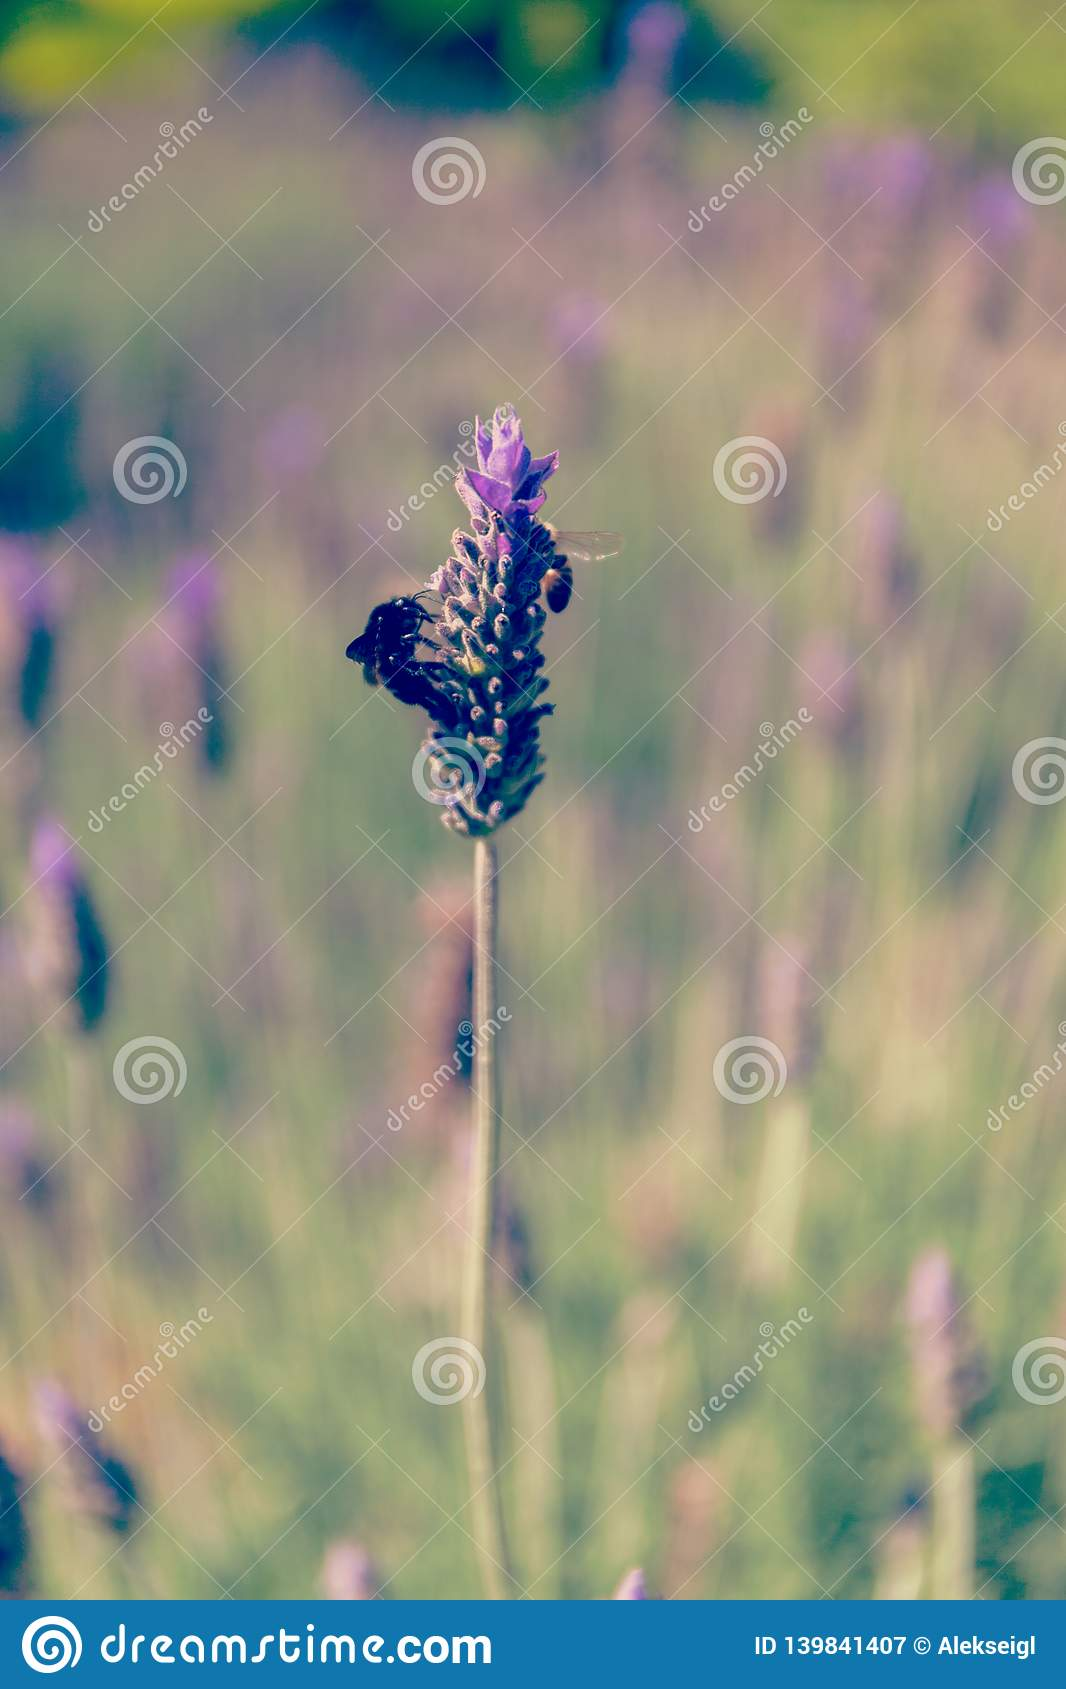 Black bumblebee extracts nectar on a lavender flower